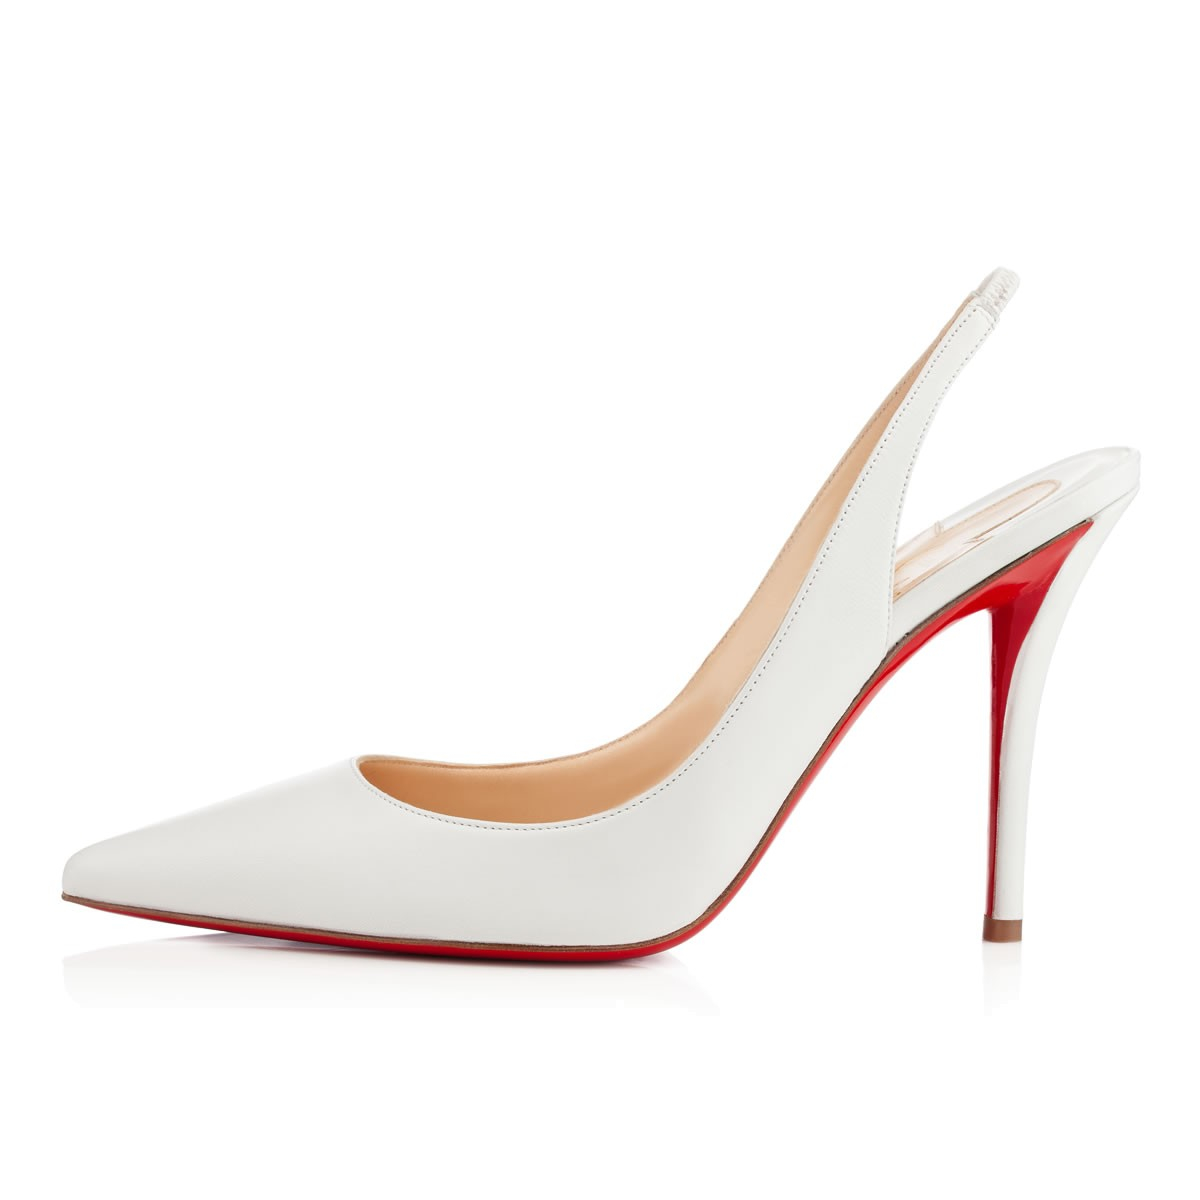 Lyst - Christian Louboutin Apostrophy Sling in White 78f23b8b6